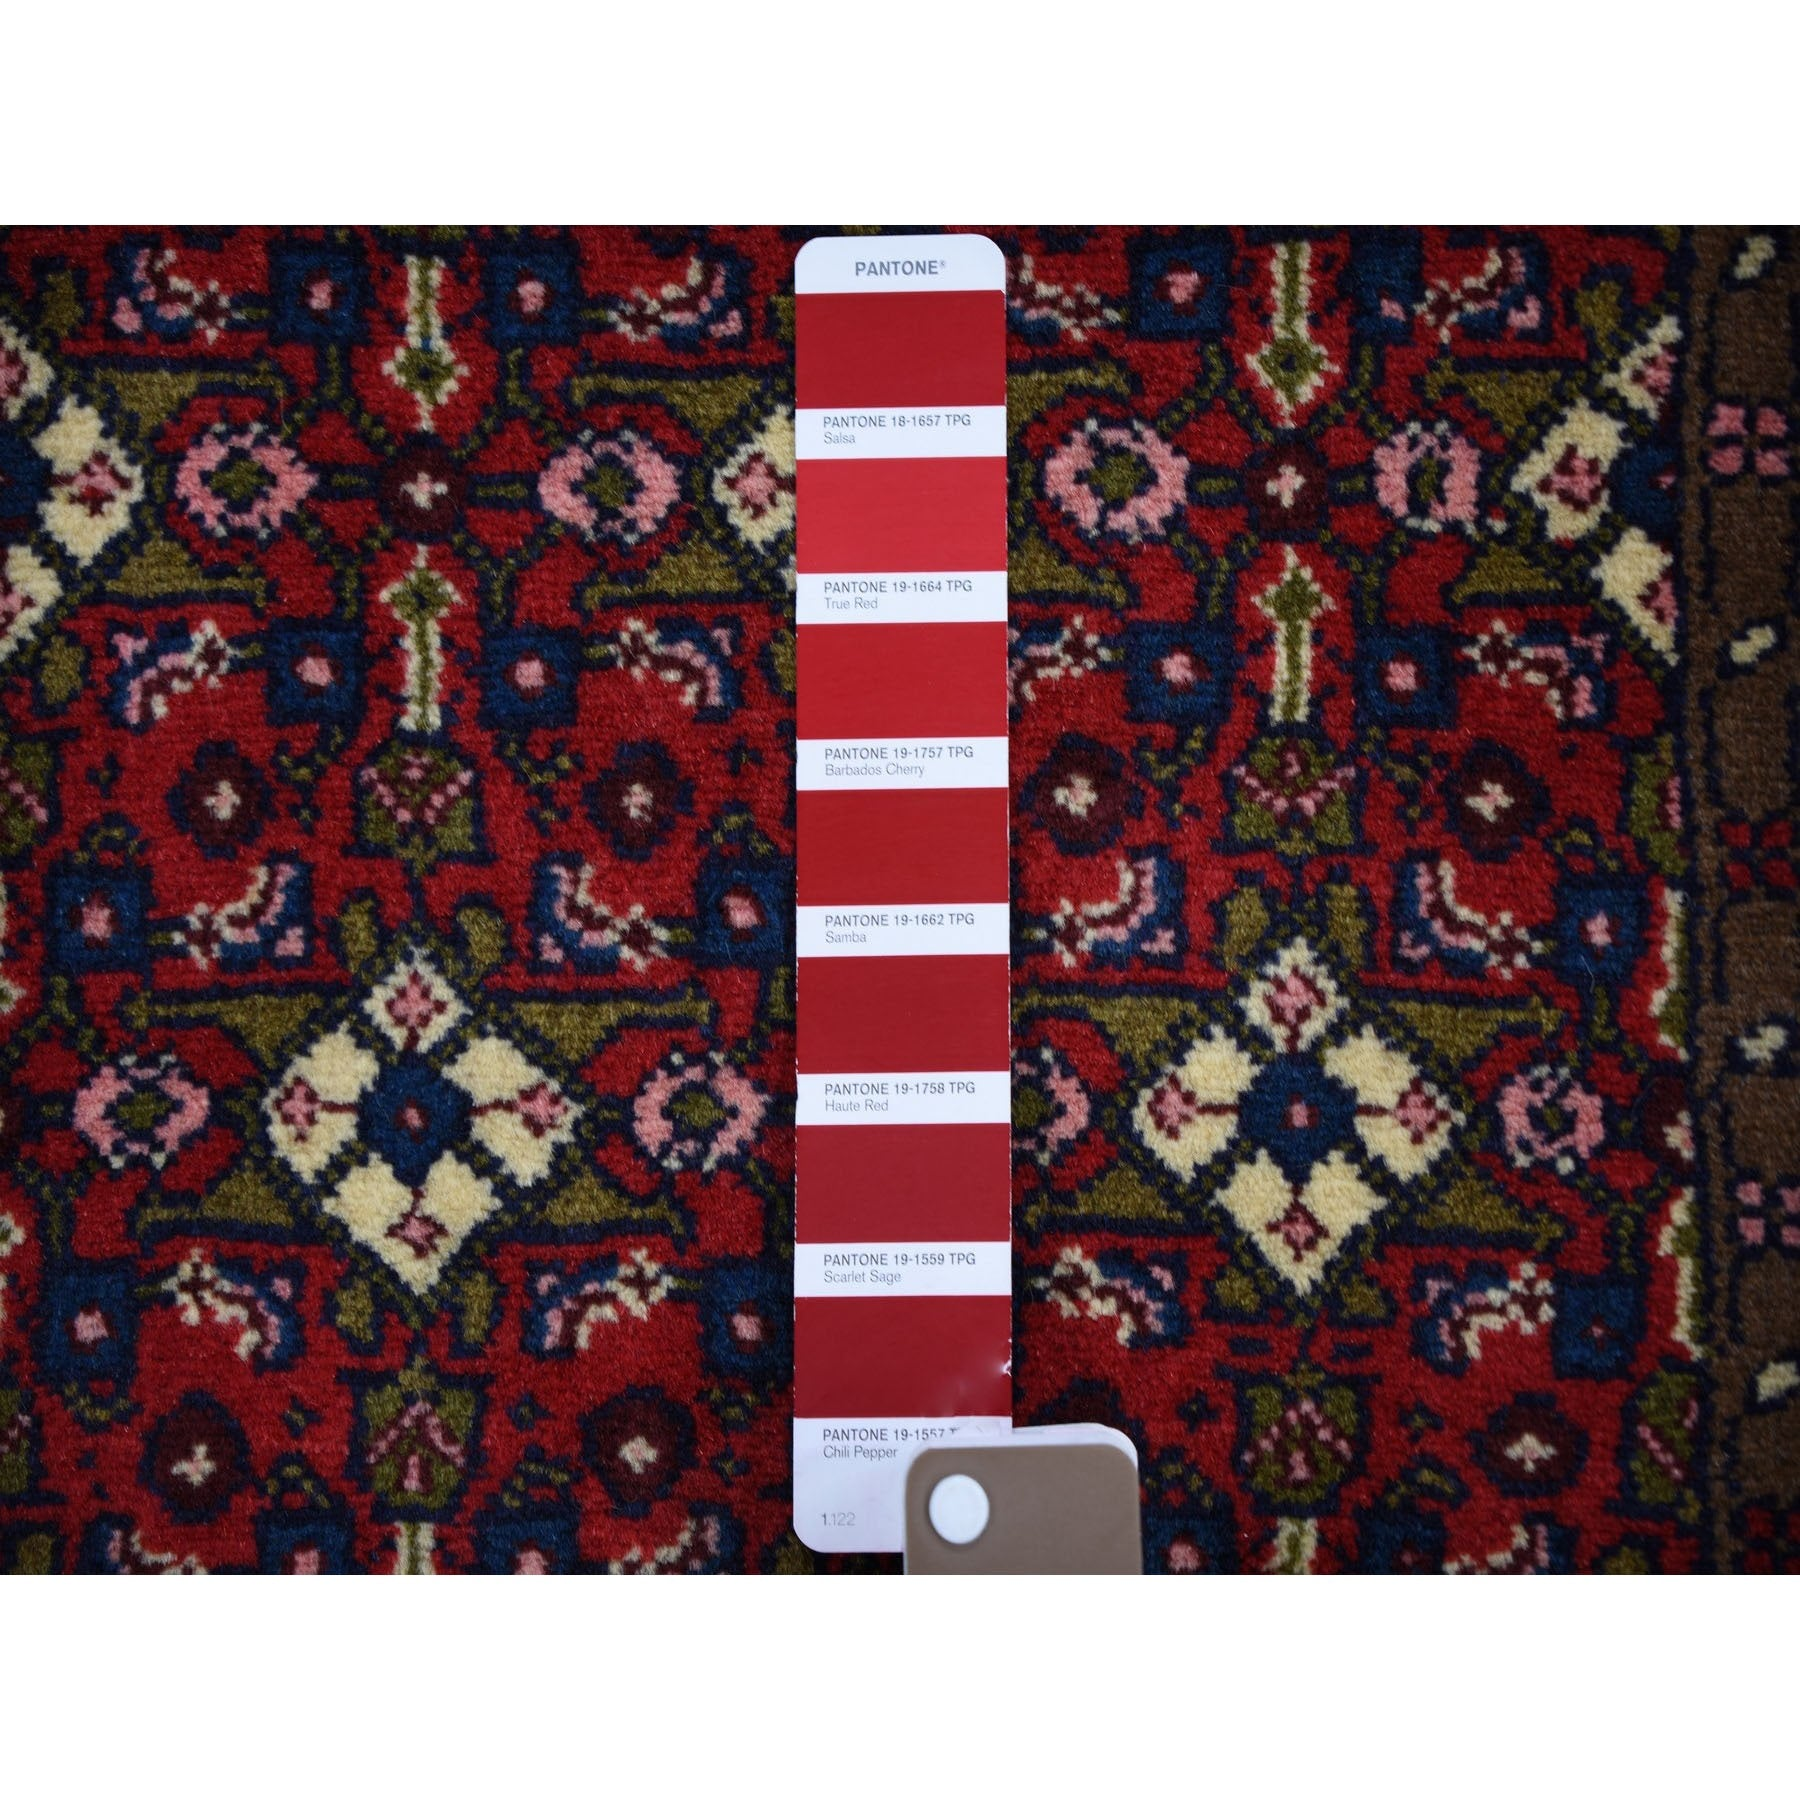 Carpet Culture Rugs, Handmade Rugs, NYC Rugs, New Rugs, Shop Rugs, Rug Store